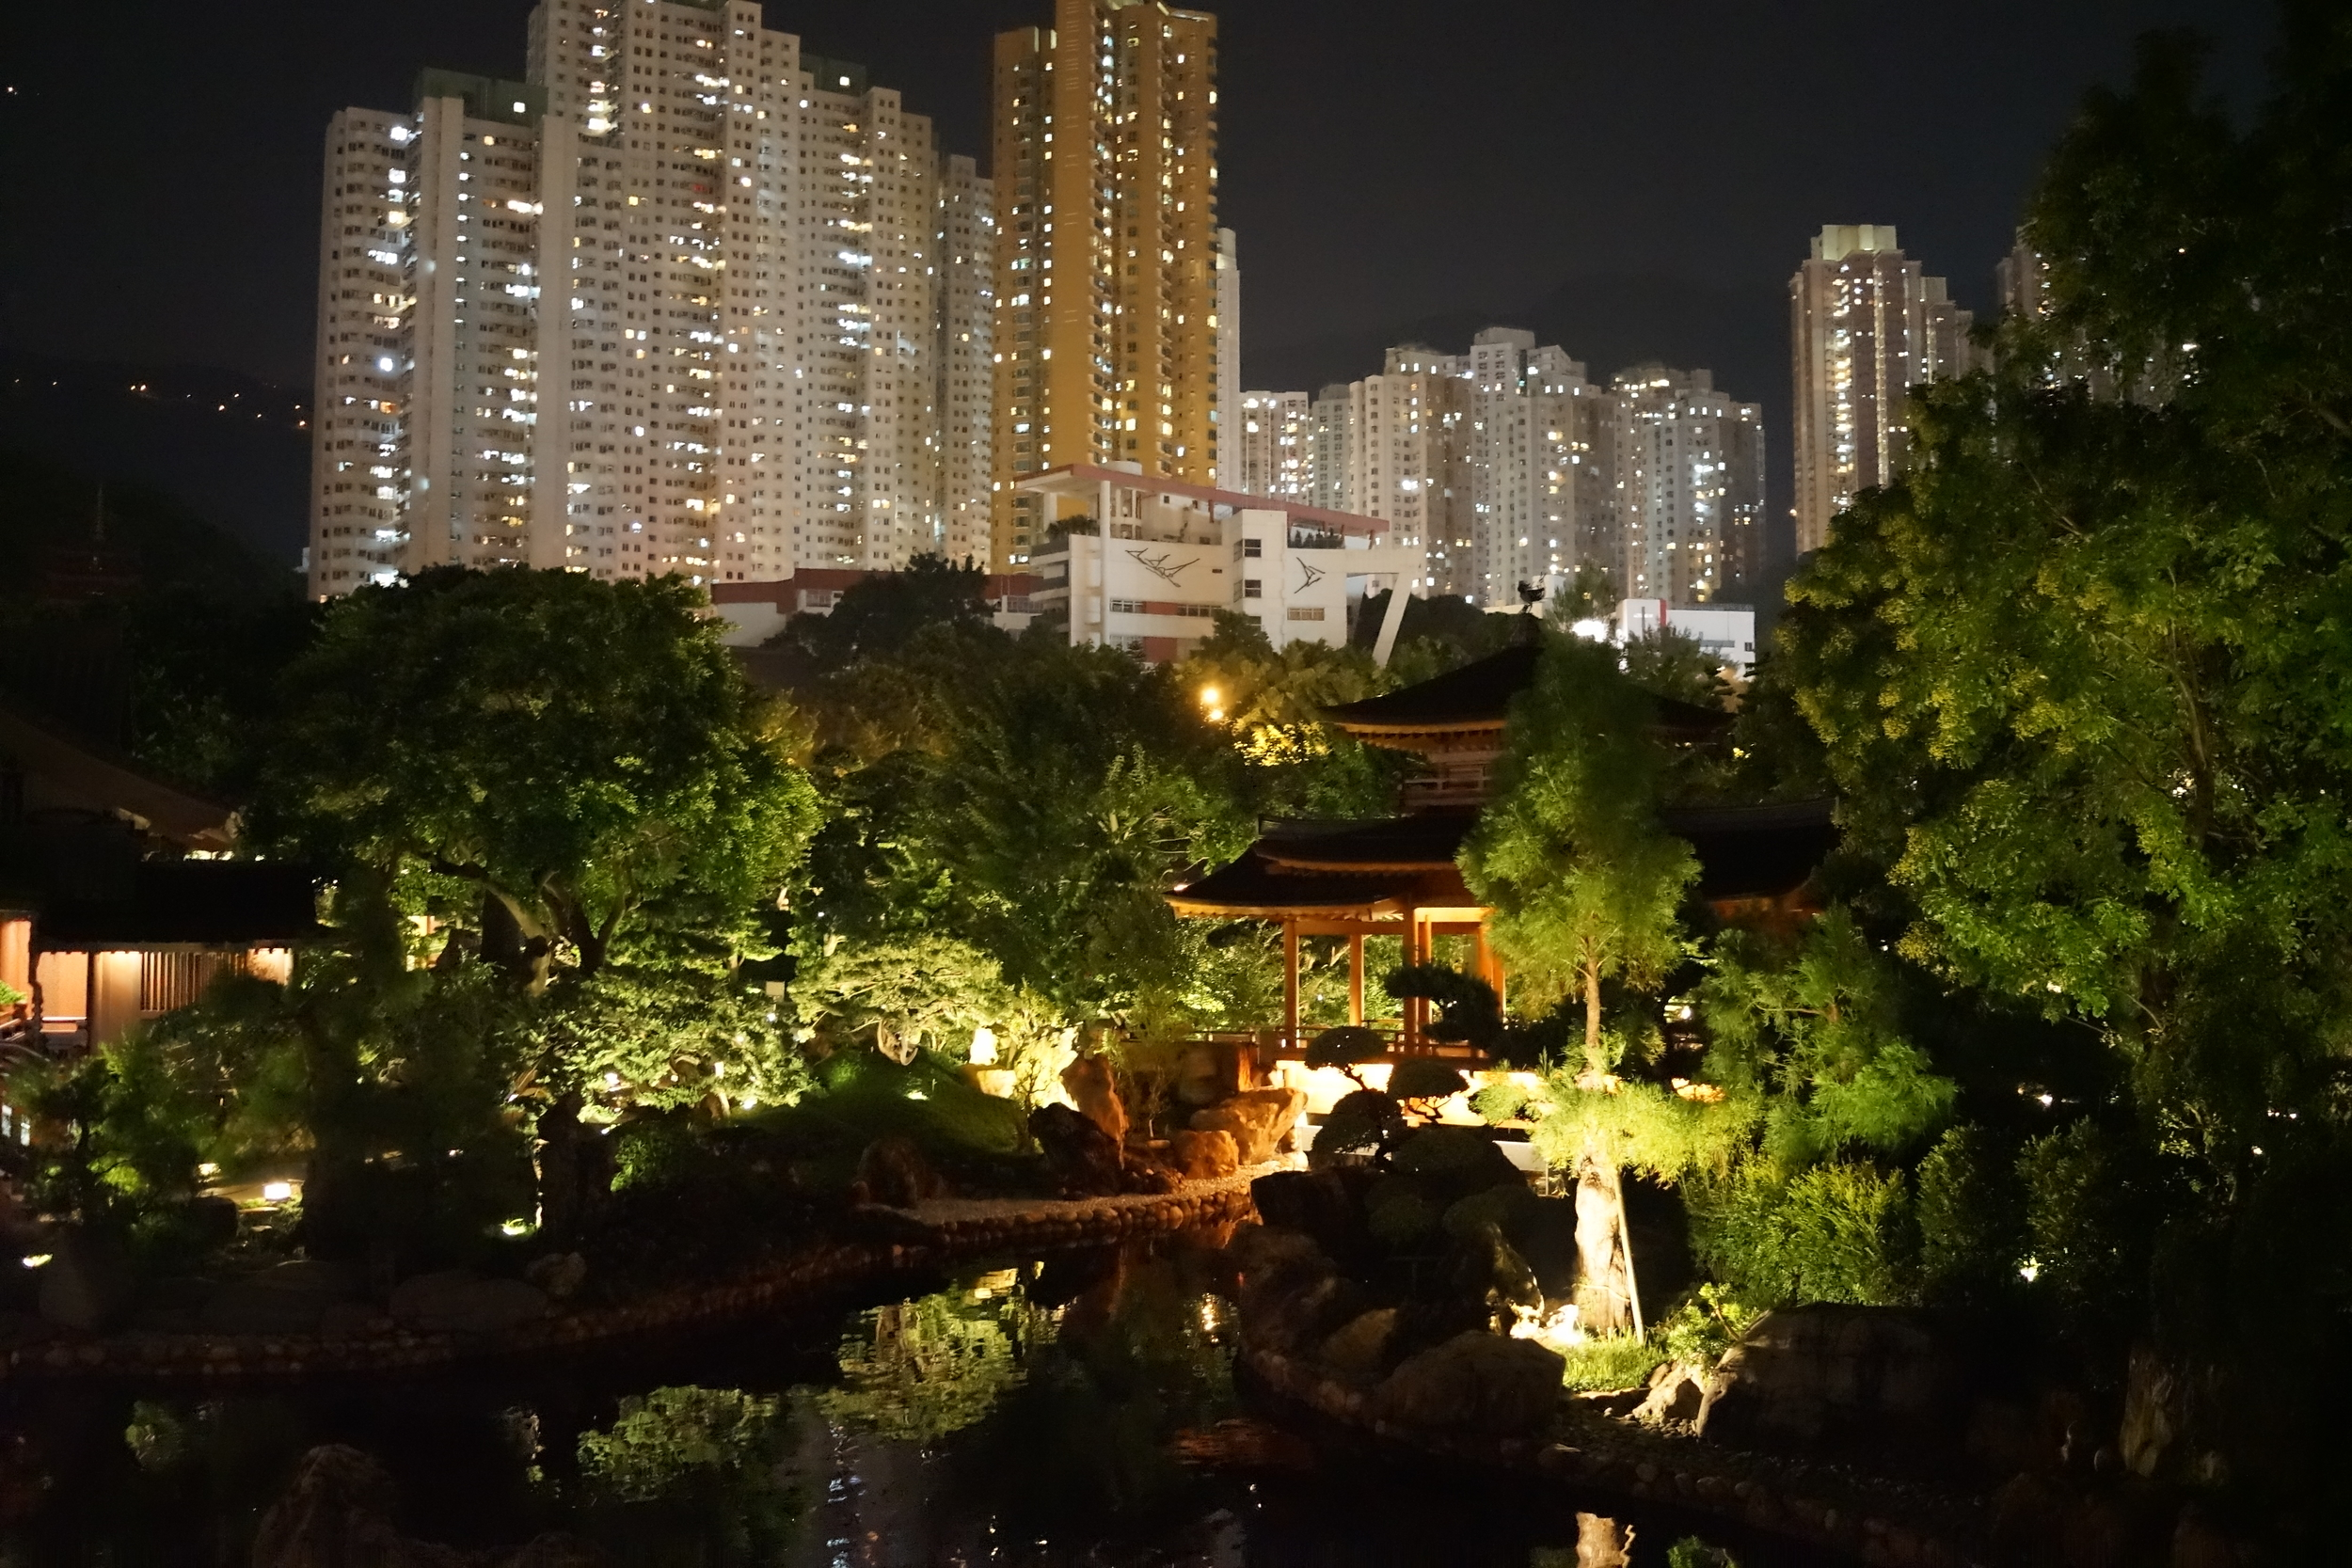 A visit to the Nan Lian Garden in Diamond Hill after dark is quite something.... it does however close at 9pm.